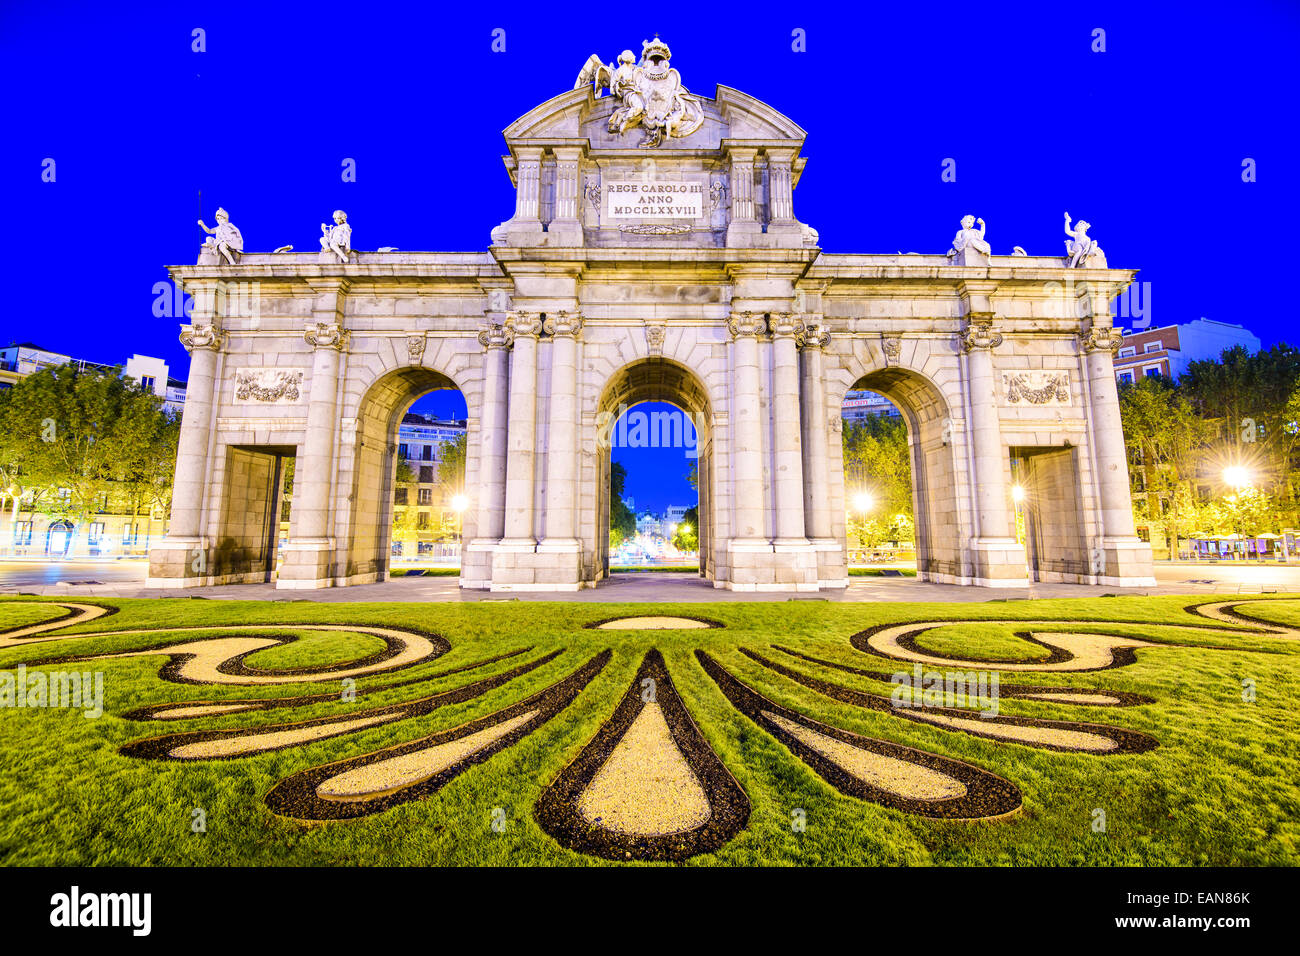 Madrid, Spain at Puerta de Alcala gate. - Stock Image